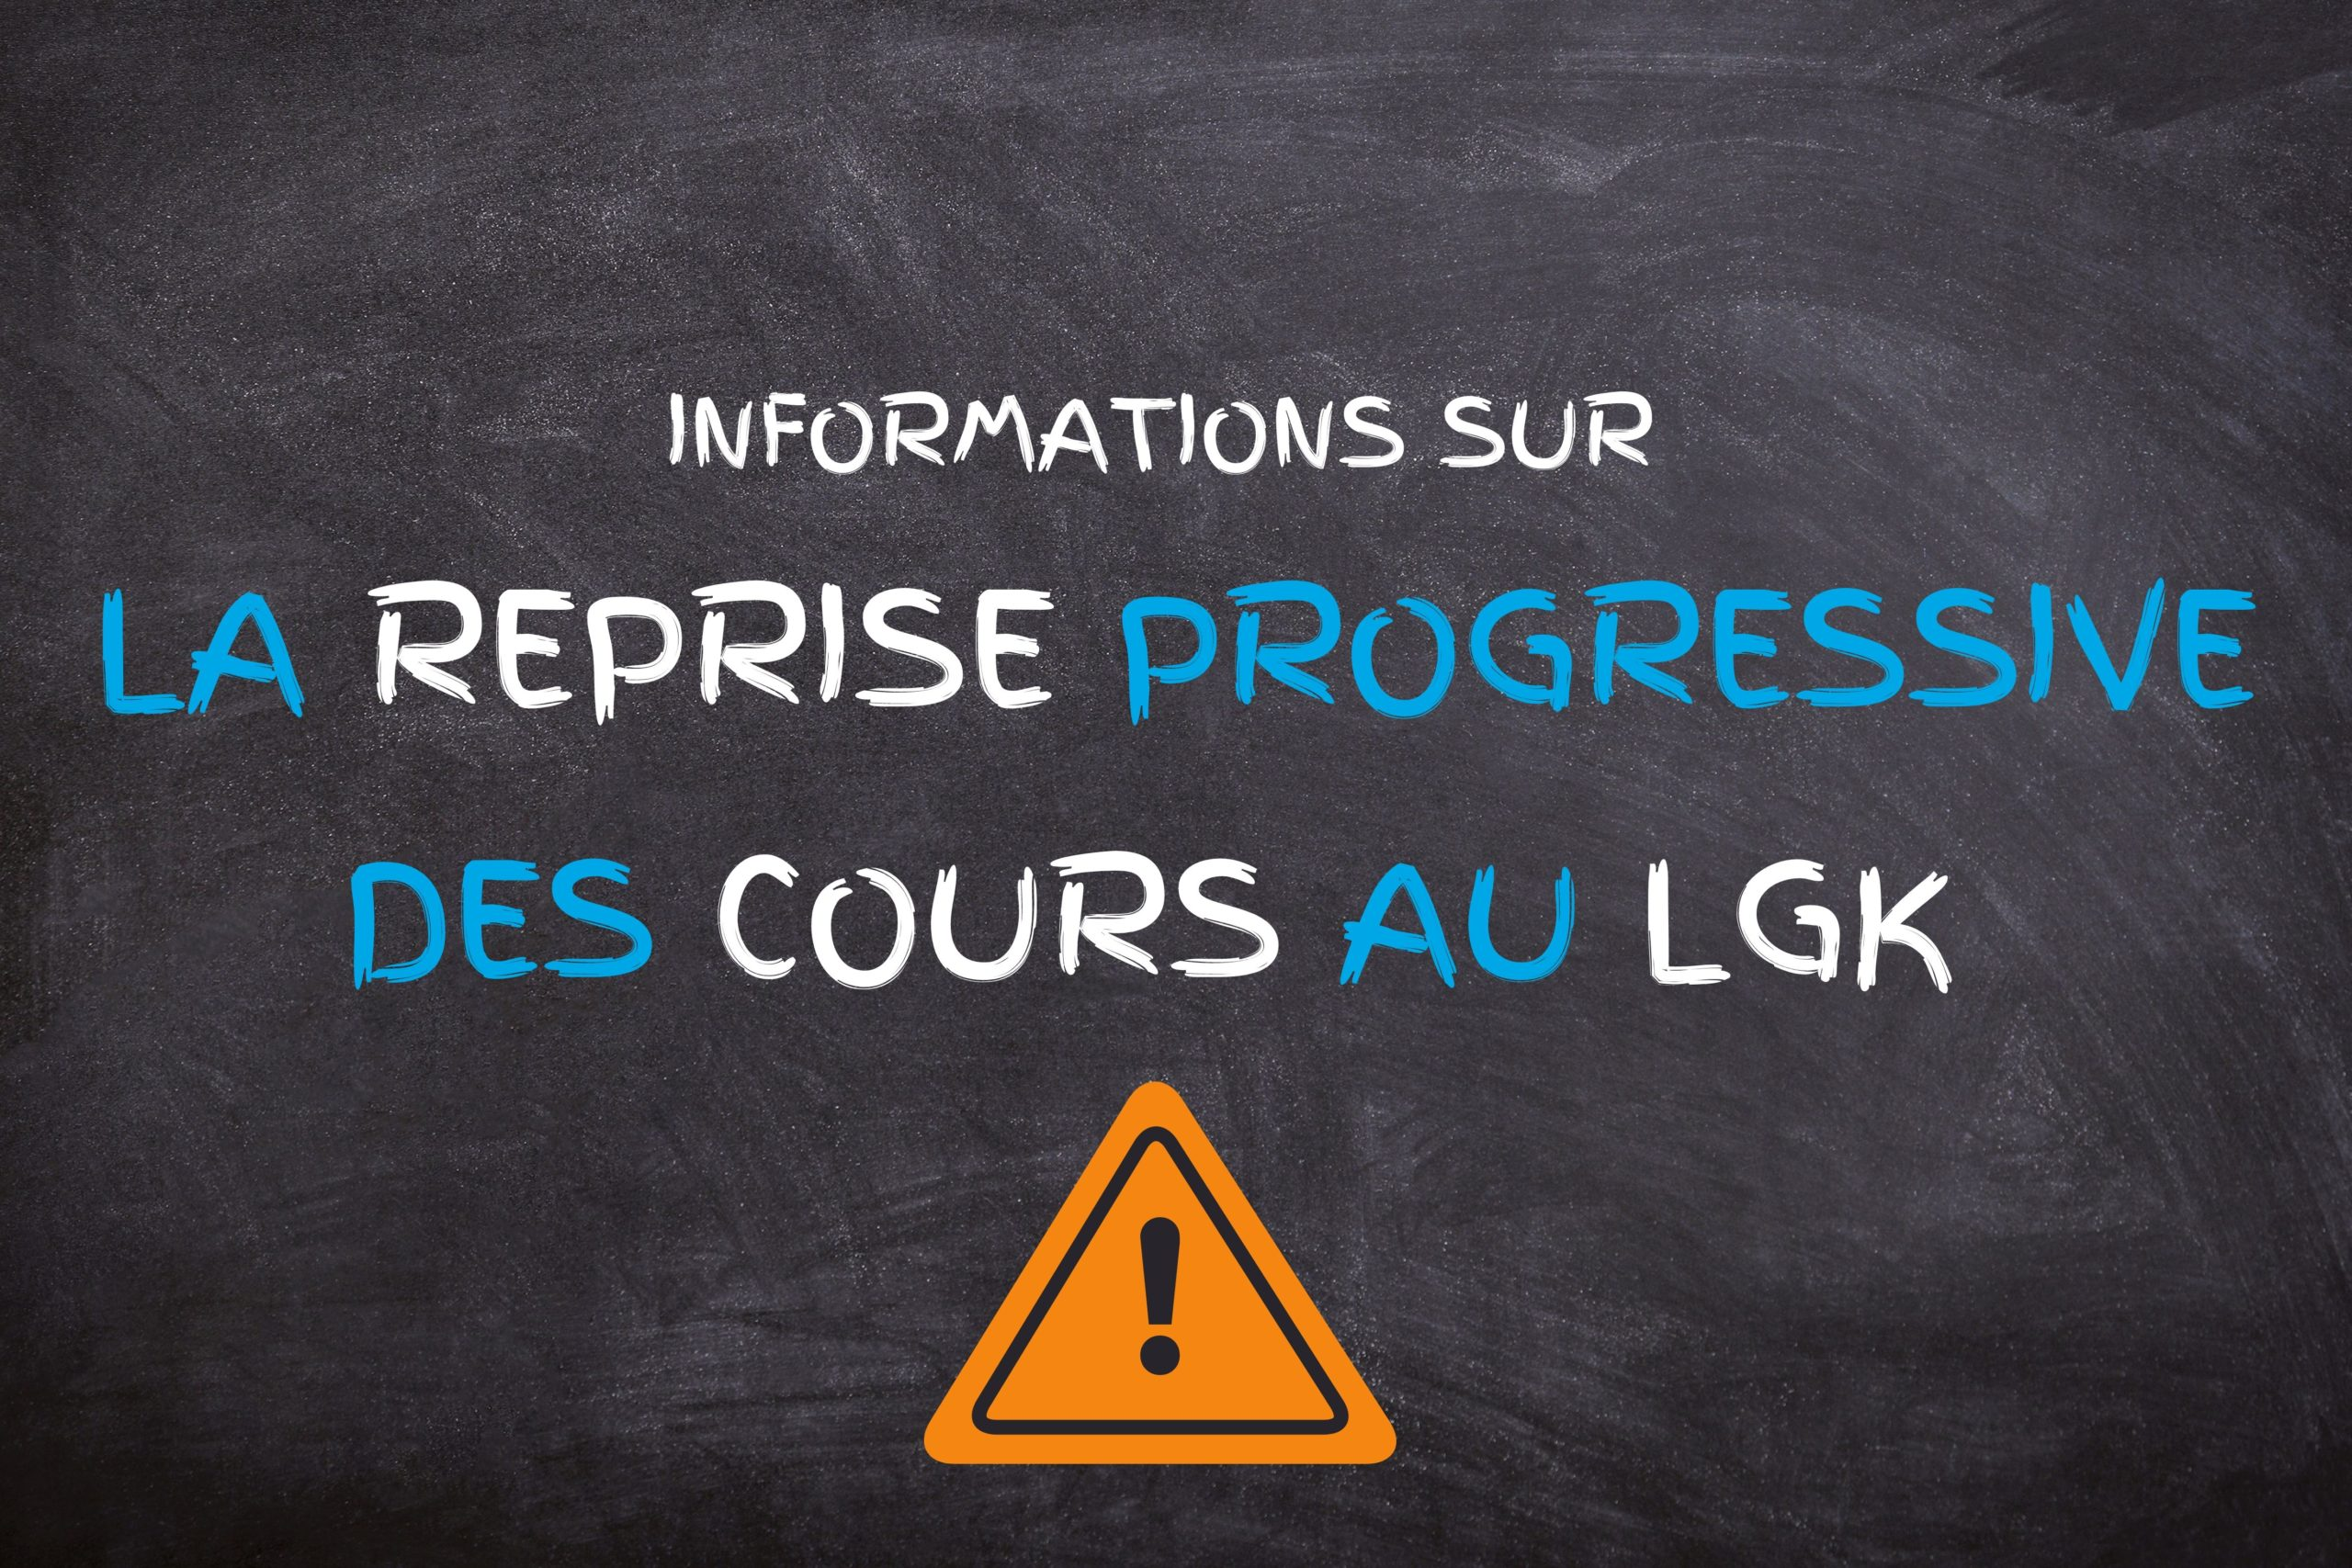 05/05/2020: Communication du LGK (COVID-19)